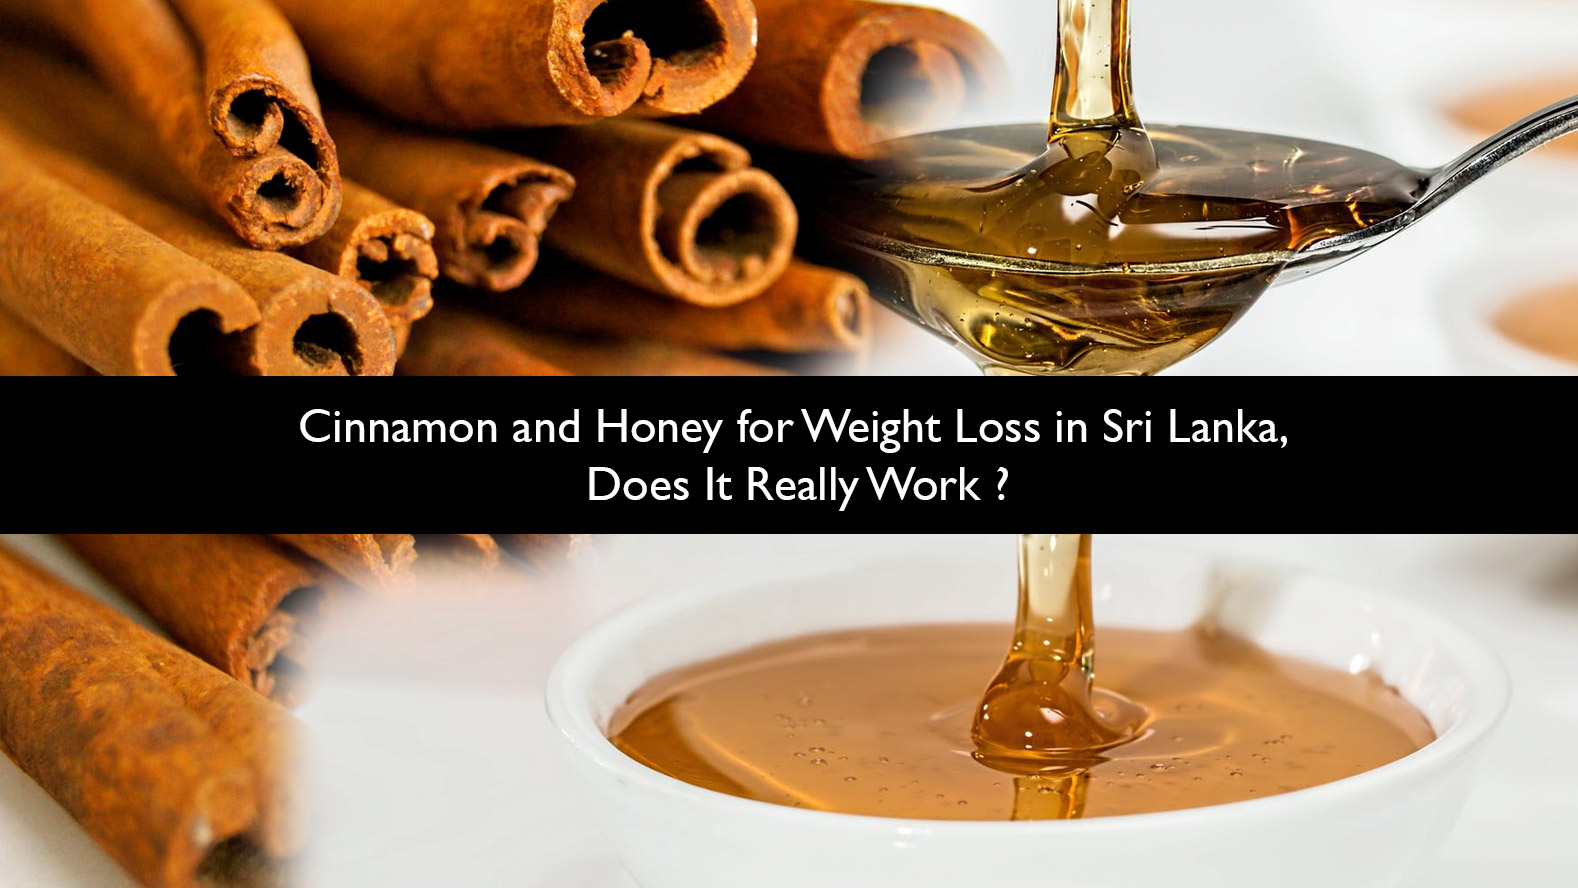 Cinnamon-and-Honey-for-Weight-Loss-in-Sri-Lanka-Does-It-Really-Work-updated